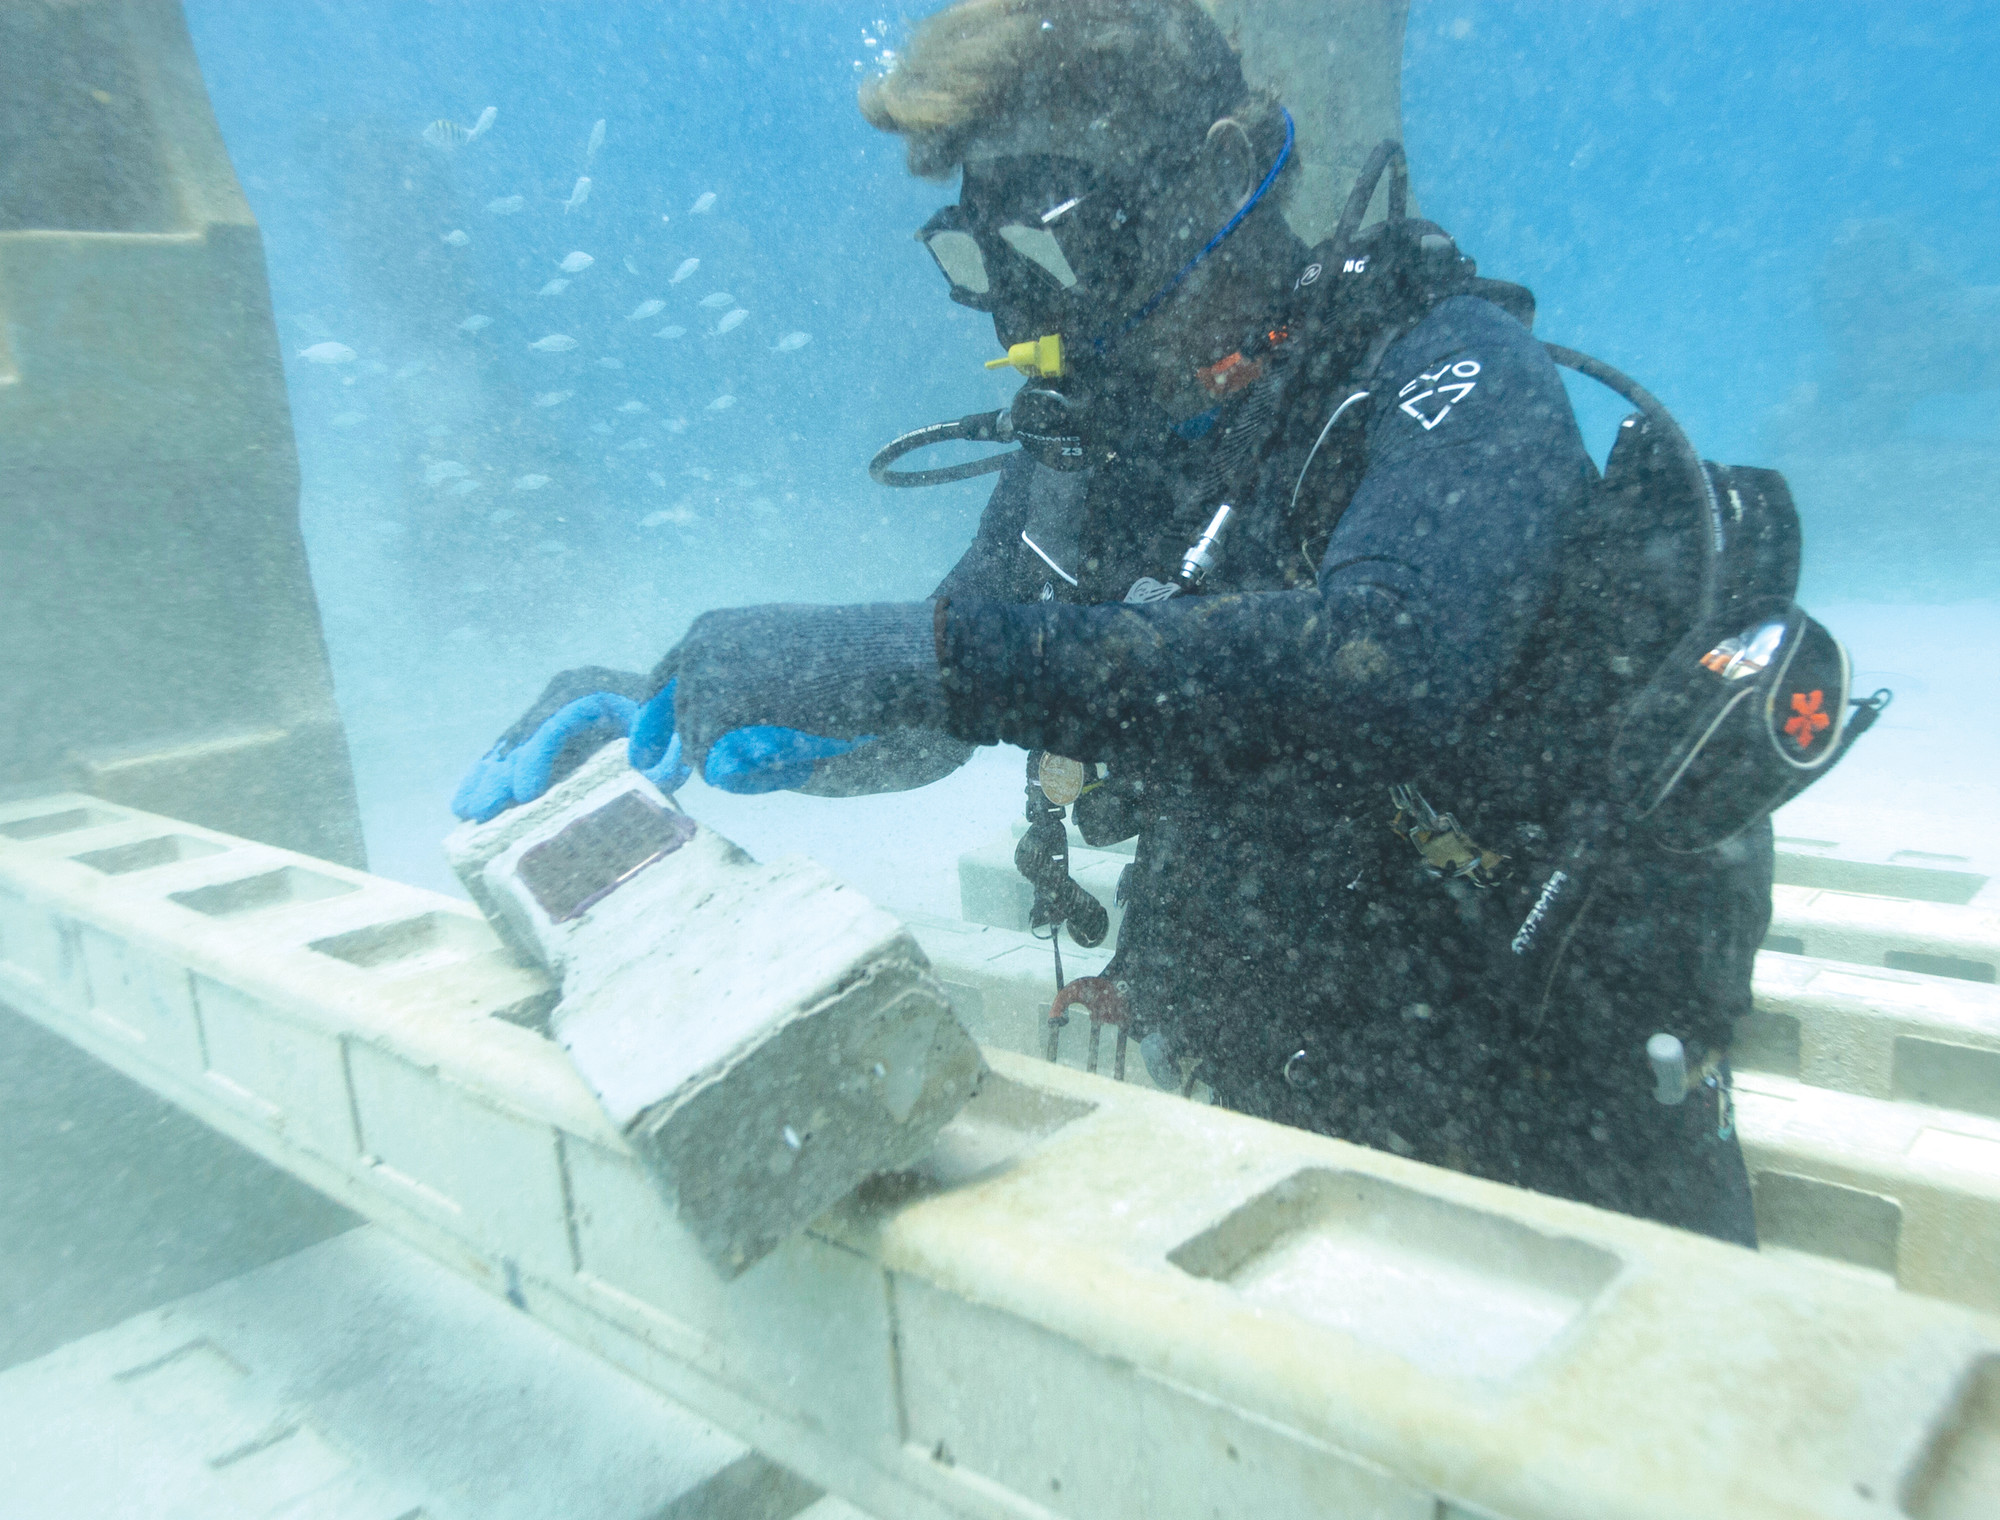 Jim Hutslar, operations director for Neptune Memorial Reef, prepares to install a memorial plaque for Buel and Linda Payne, affixed to a cement baluster mixed with their ashes, at the Neptune Memorial Reef near Miami Beach. The cemetery is already home to the cremated remains of about 1,500 people and is welcoming thousands more seeking life in the afterlife.